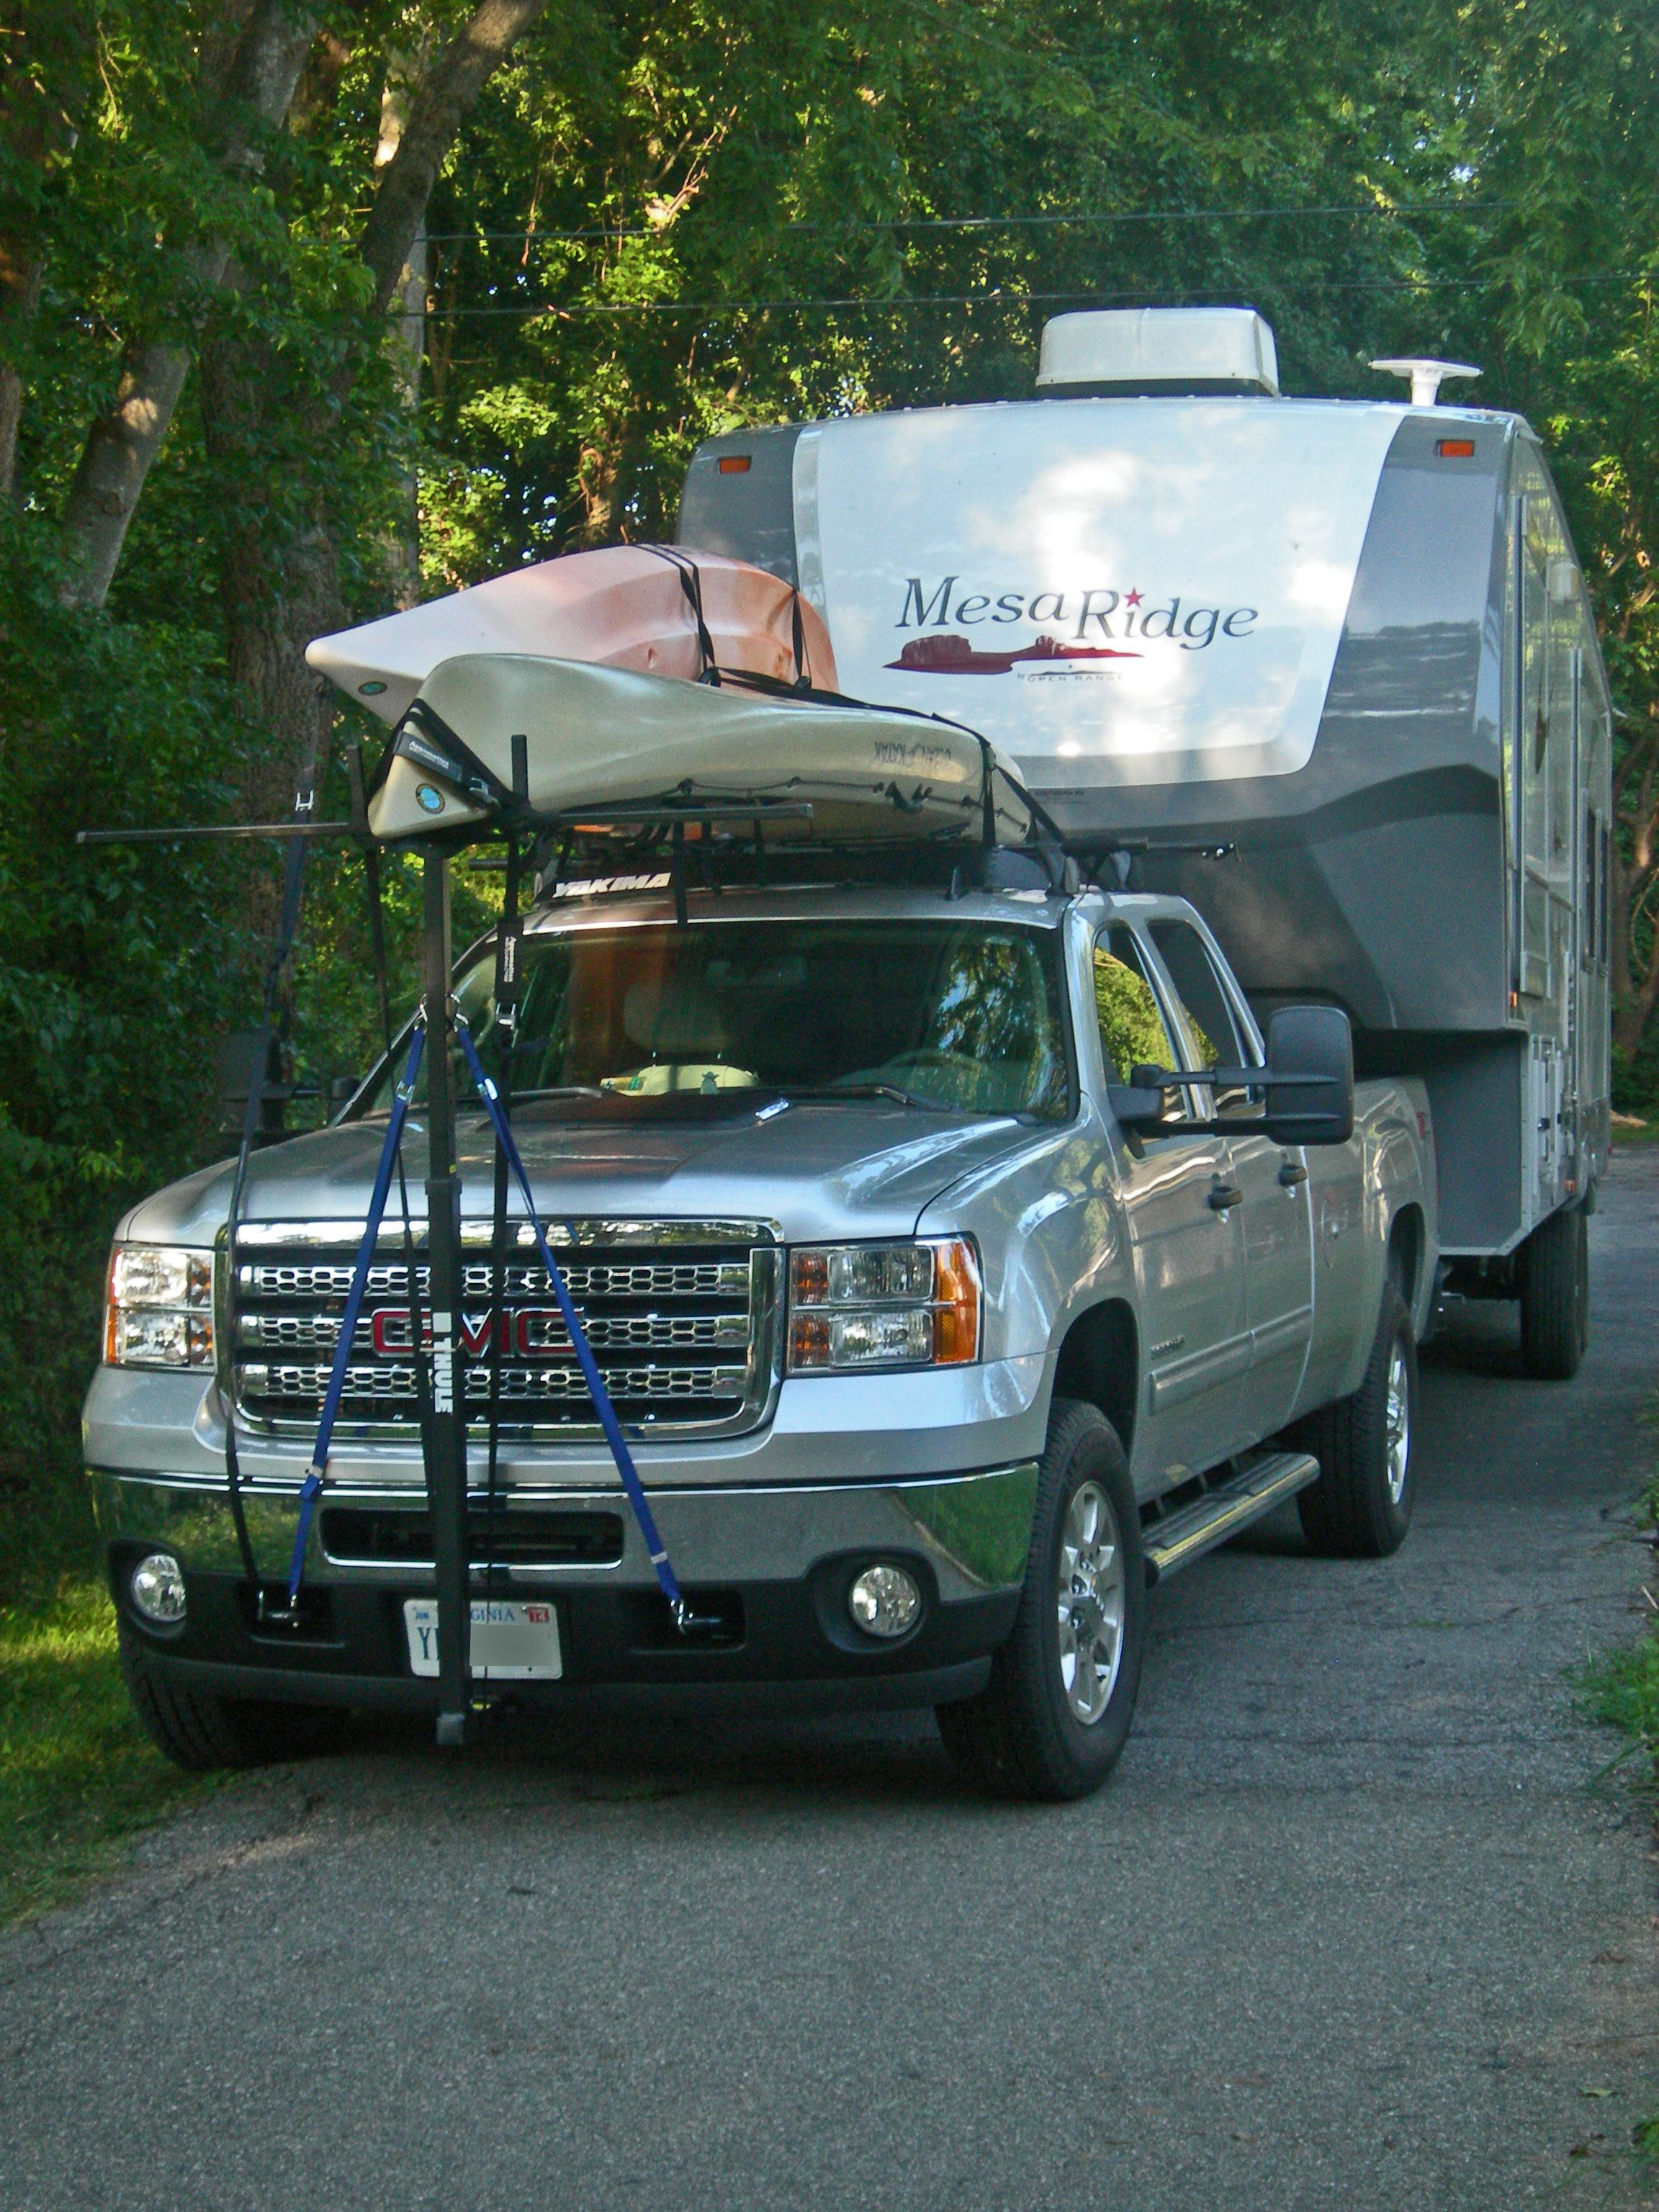 kayak as size in hitch mount for well with roof racks plans rv carrier plus kayaks conjunction full also of rack com